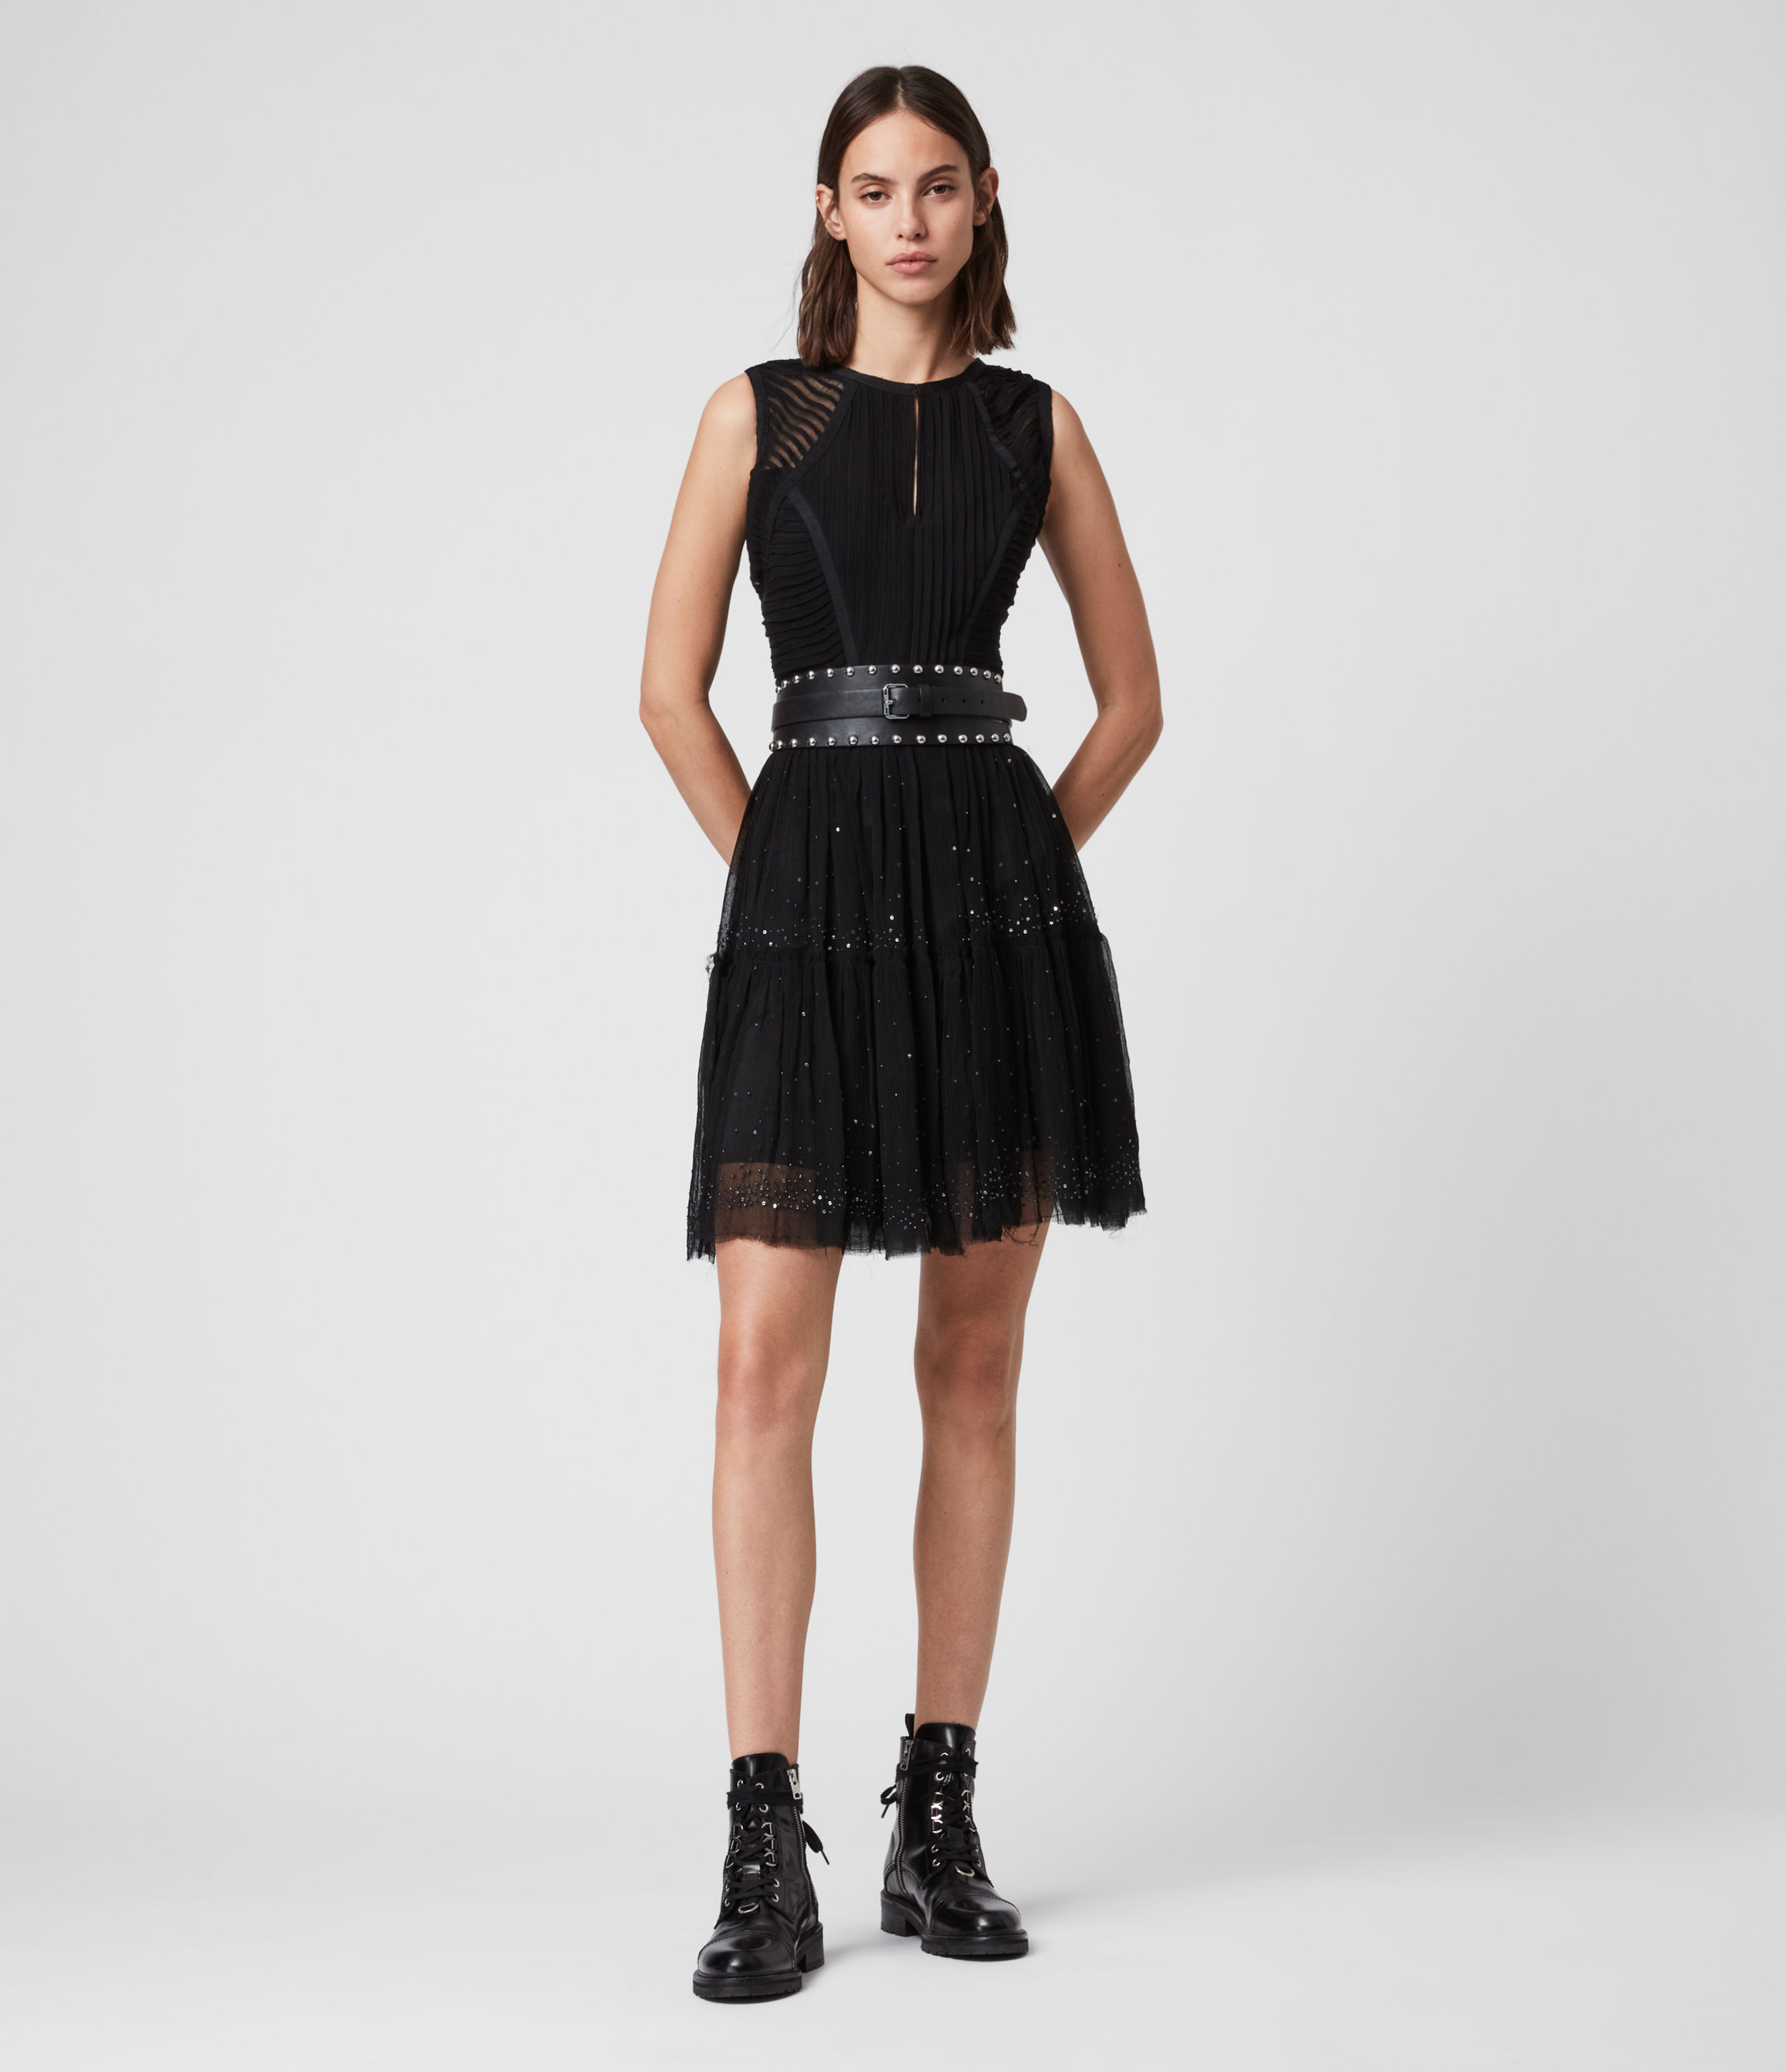 AllSaints Rochi Embellished Dress